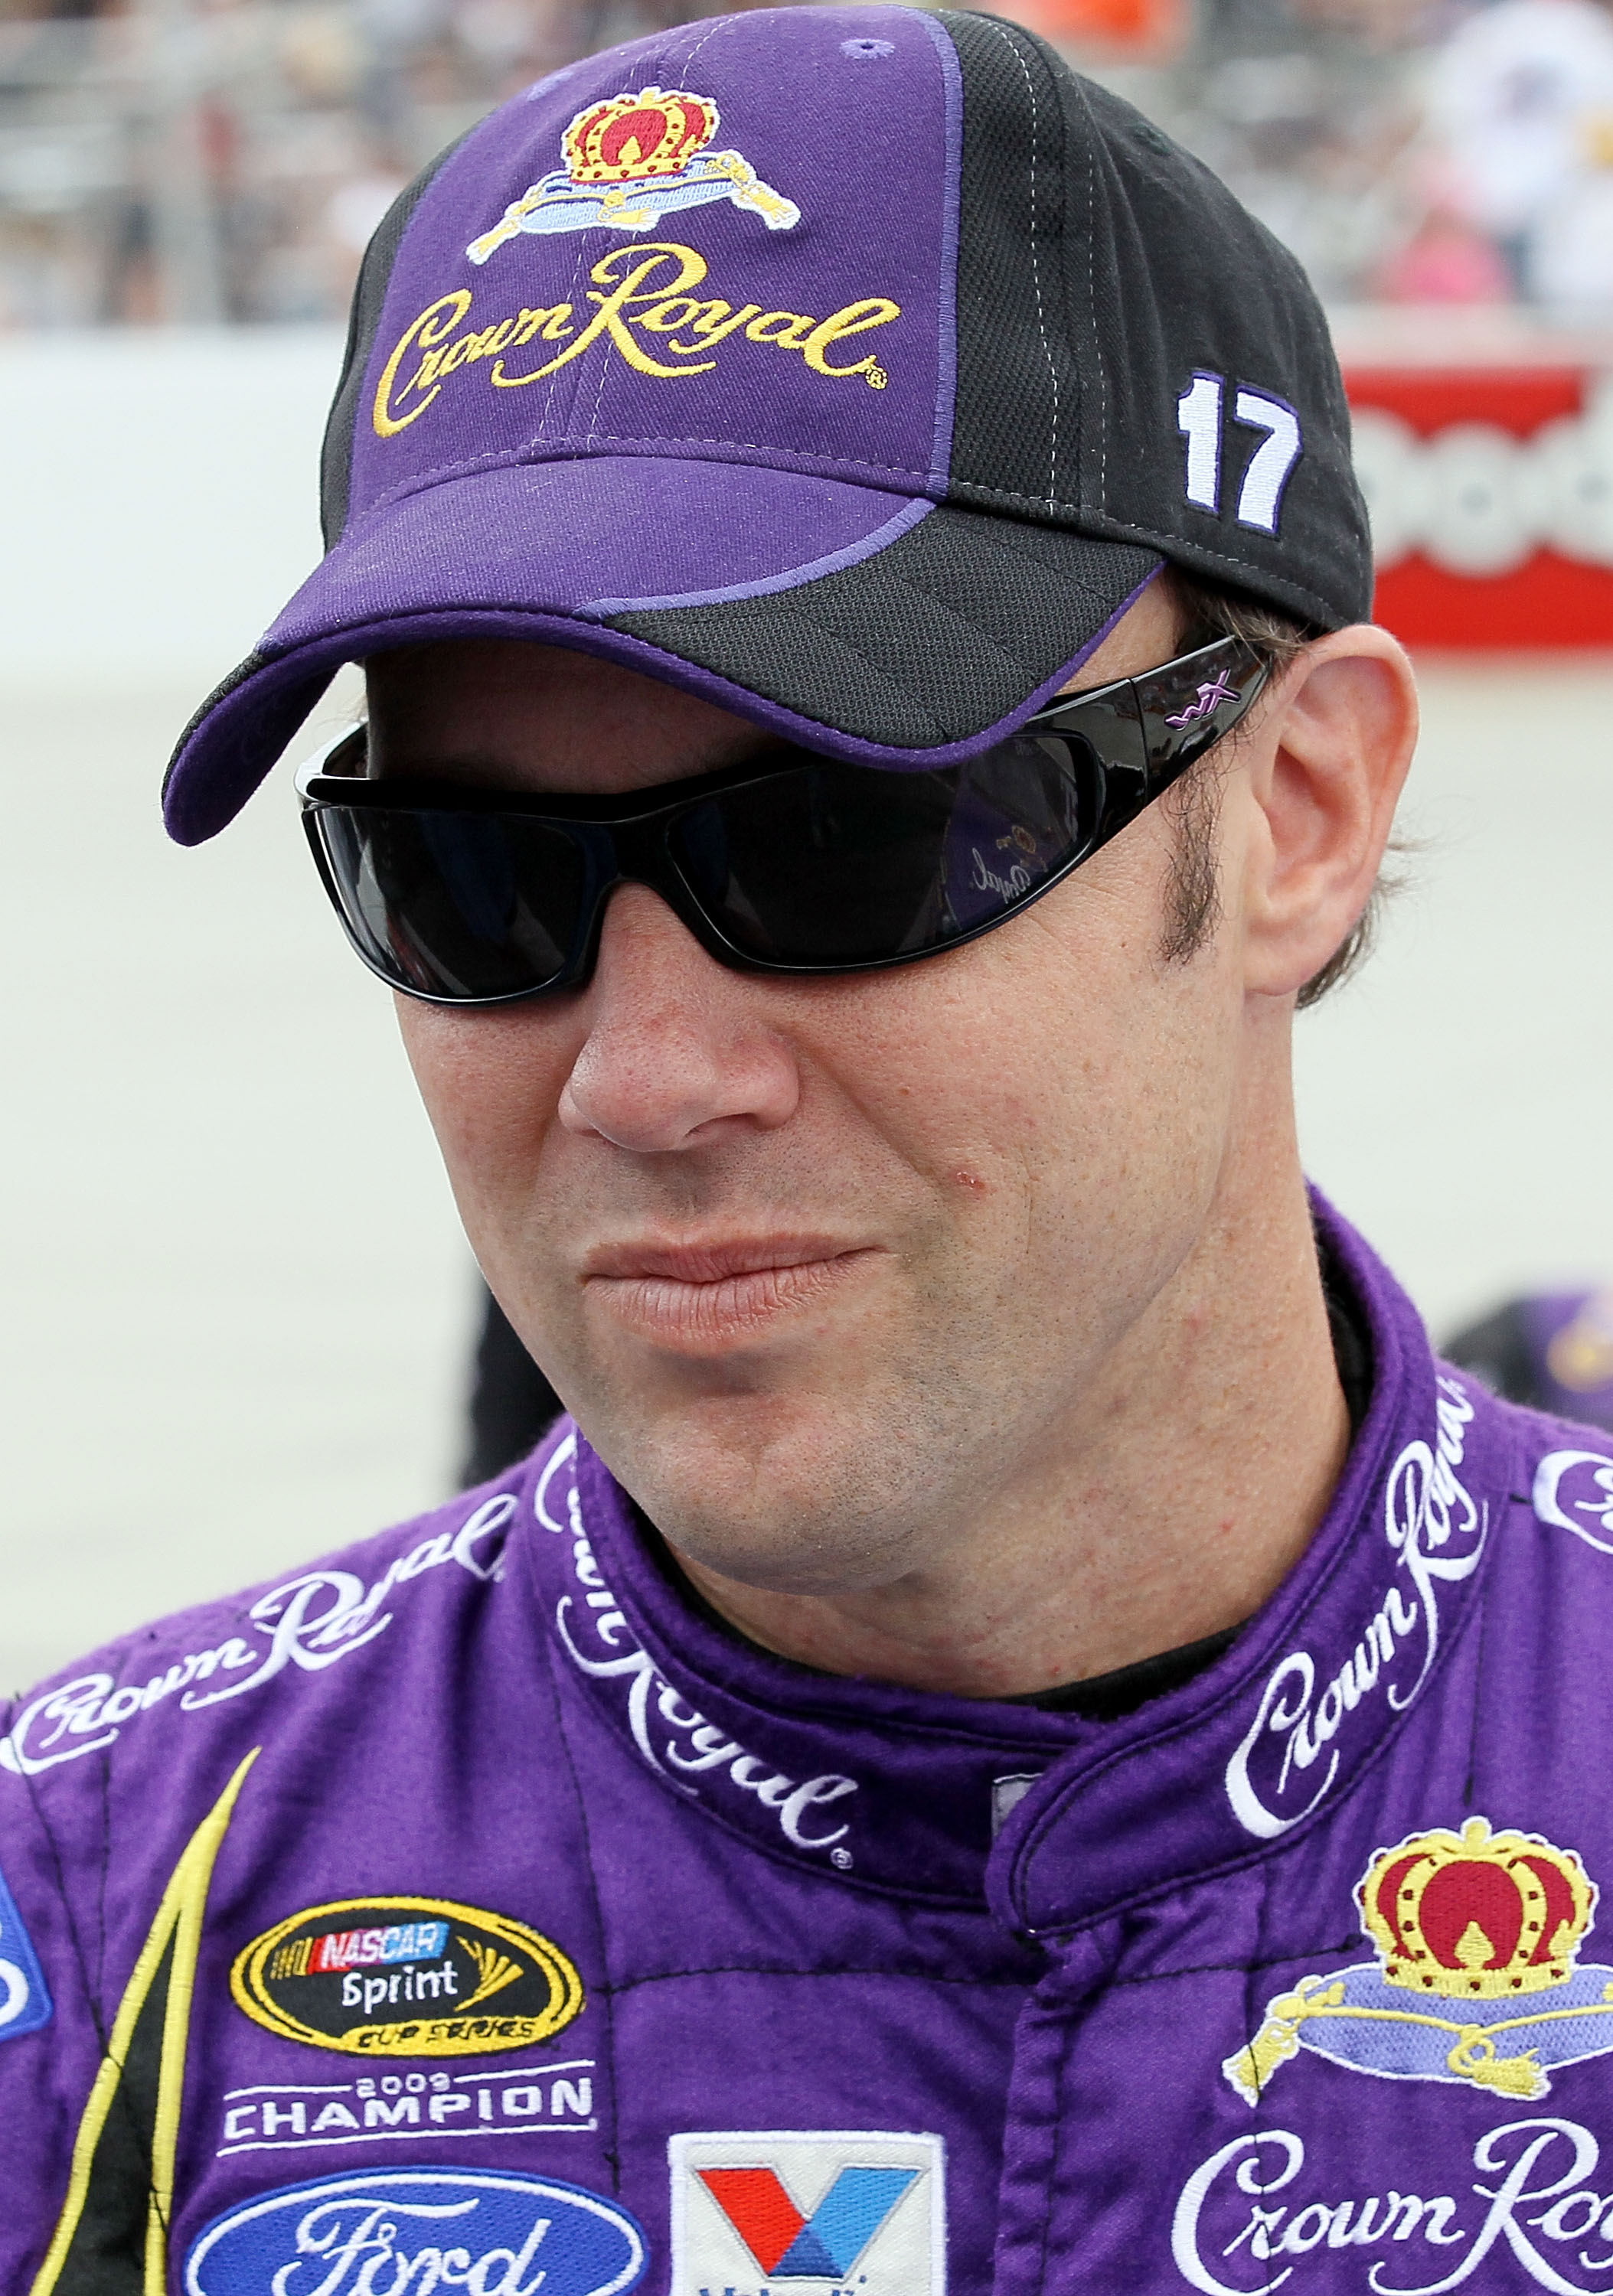 DOVER, DE - SEPTEMBER 26:  Matt Kenseth, driver of the #17 Crown Royal Ford, stands on the grid prior to the NASCAR Sprint Cup Series AAA 400 at Dover International Speedway on September 26, 2010 in Dover, Delaware.  (Photo by Jim McIsaac/Getty Images for